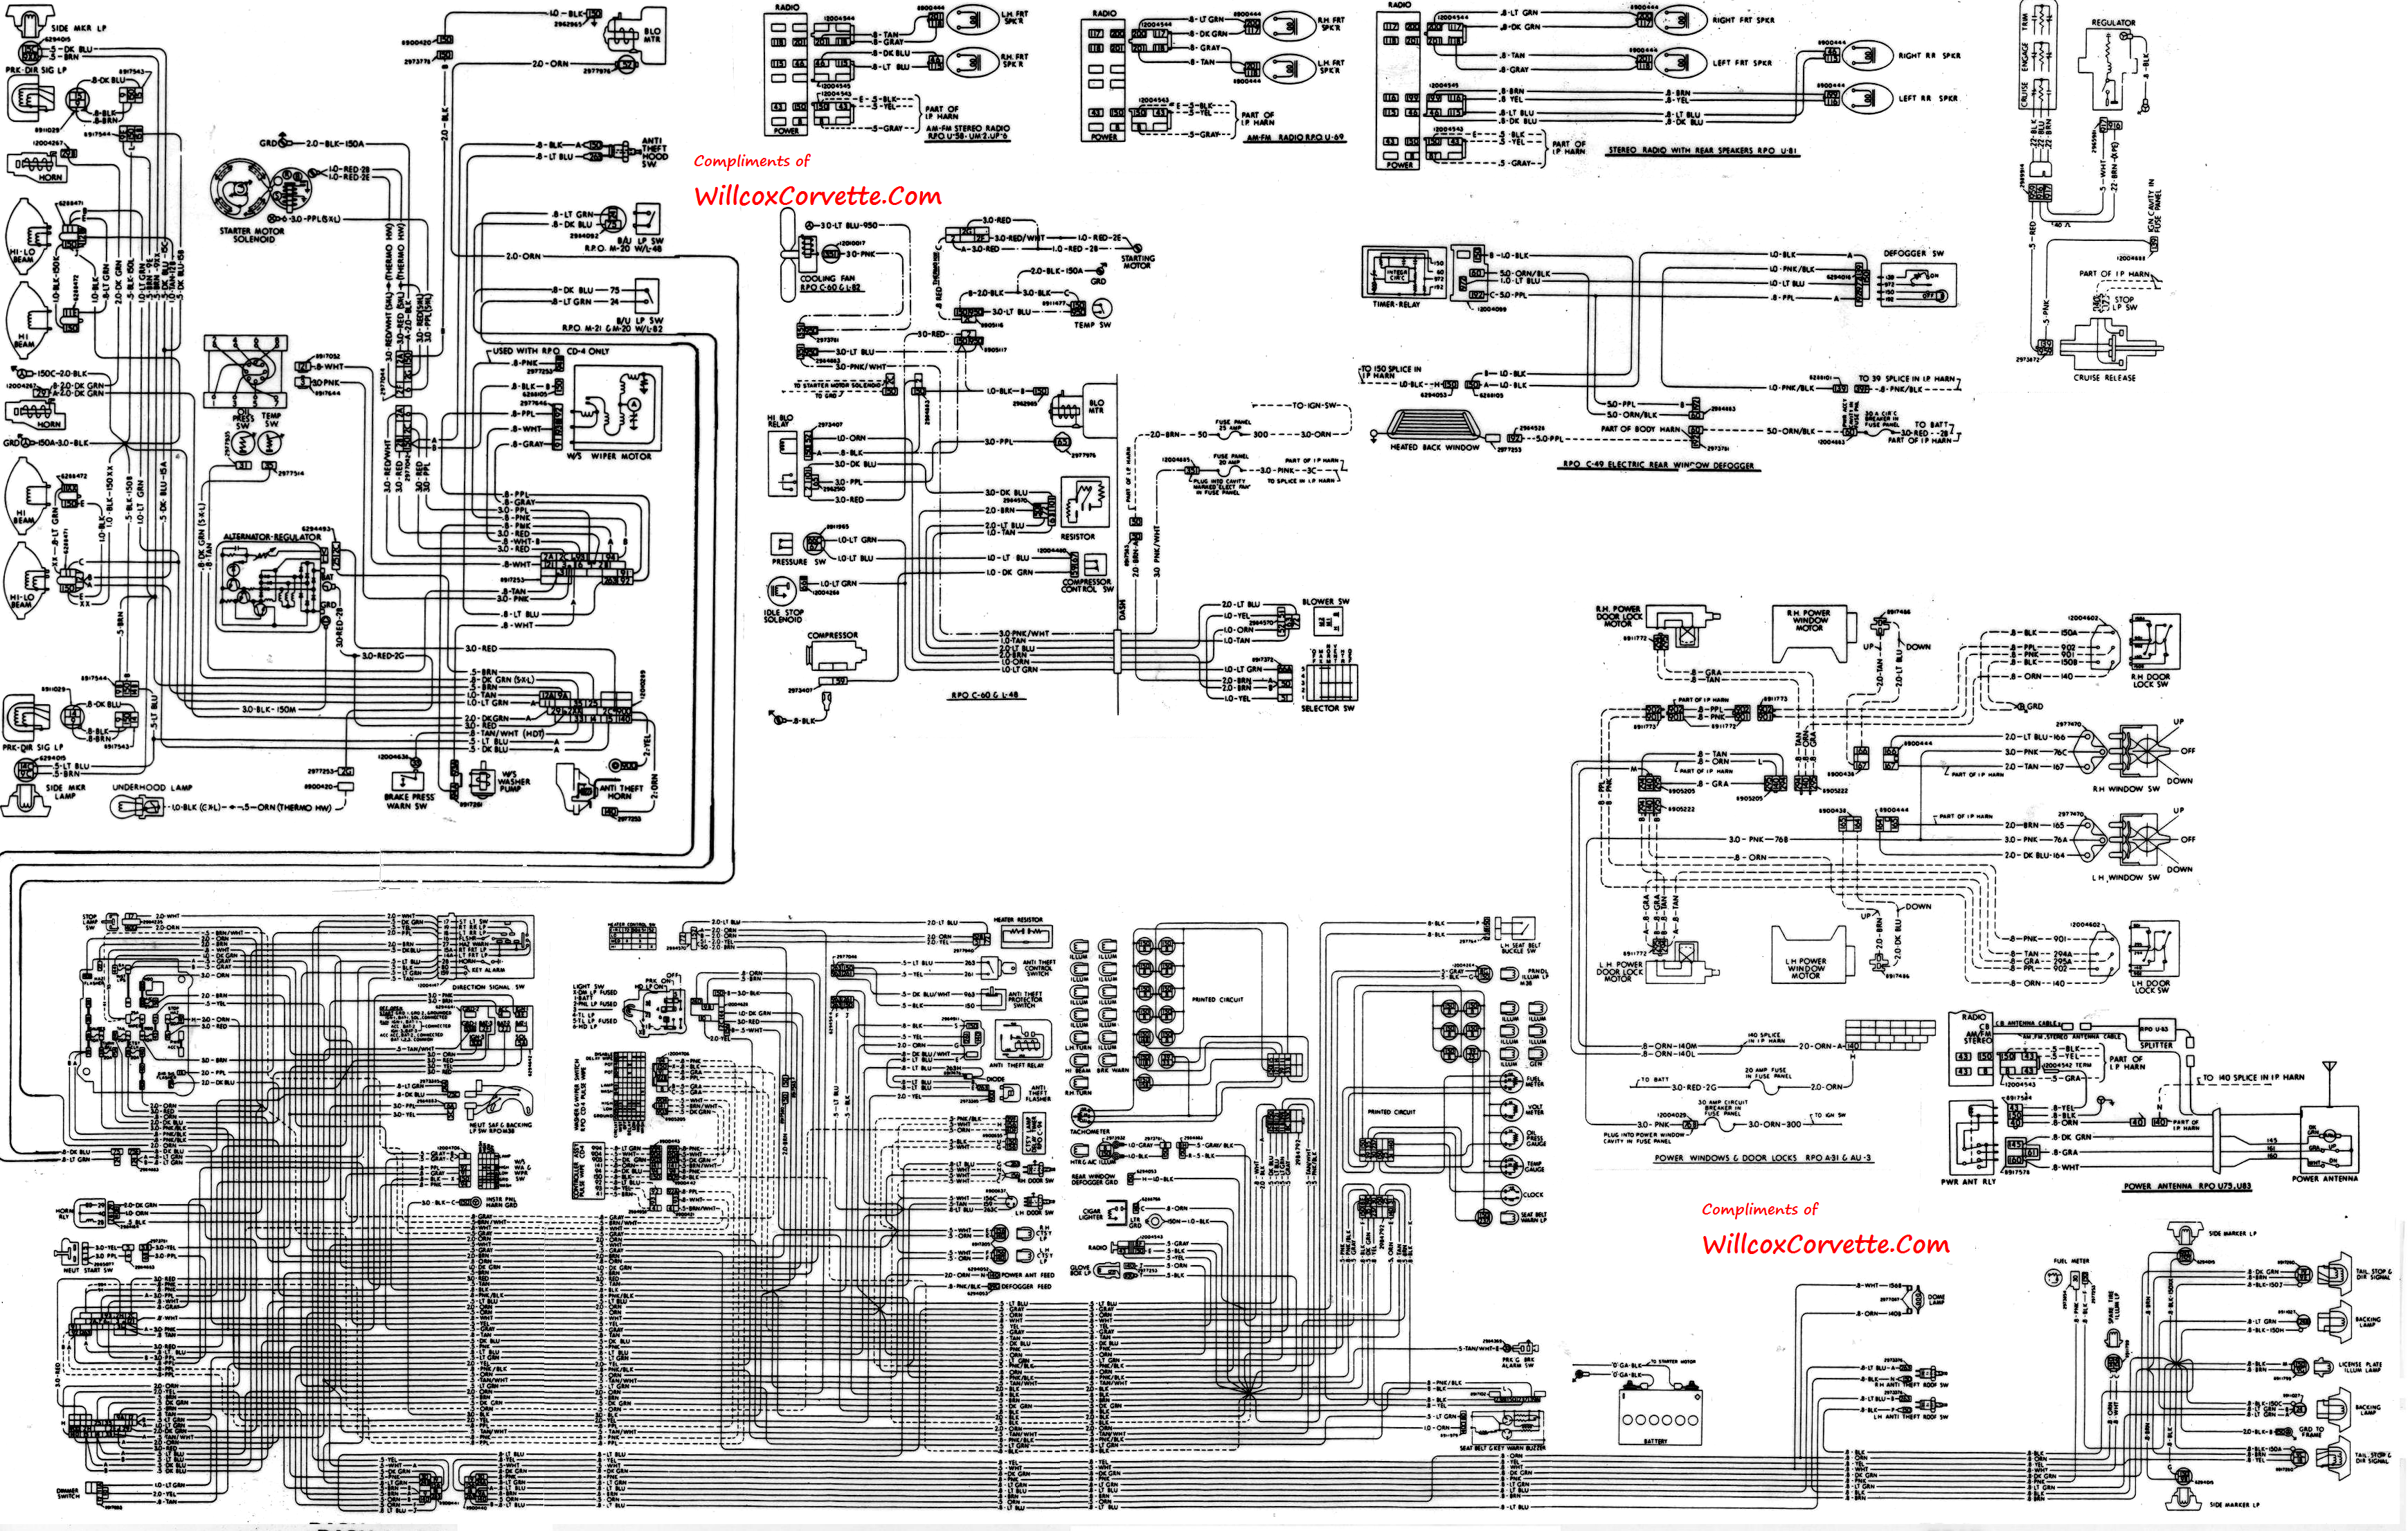 1979 wire diagram corvette fuse box diagram corvette free wiring diagrams 1966 corvette wiring diagram pdf at mifinder.co